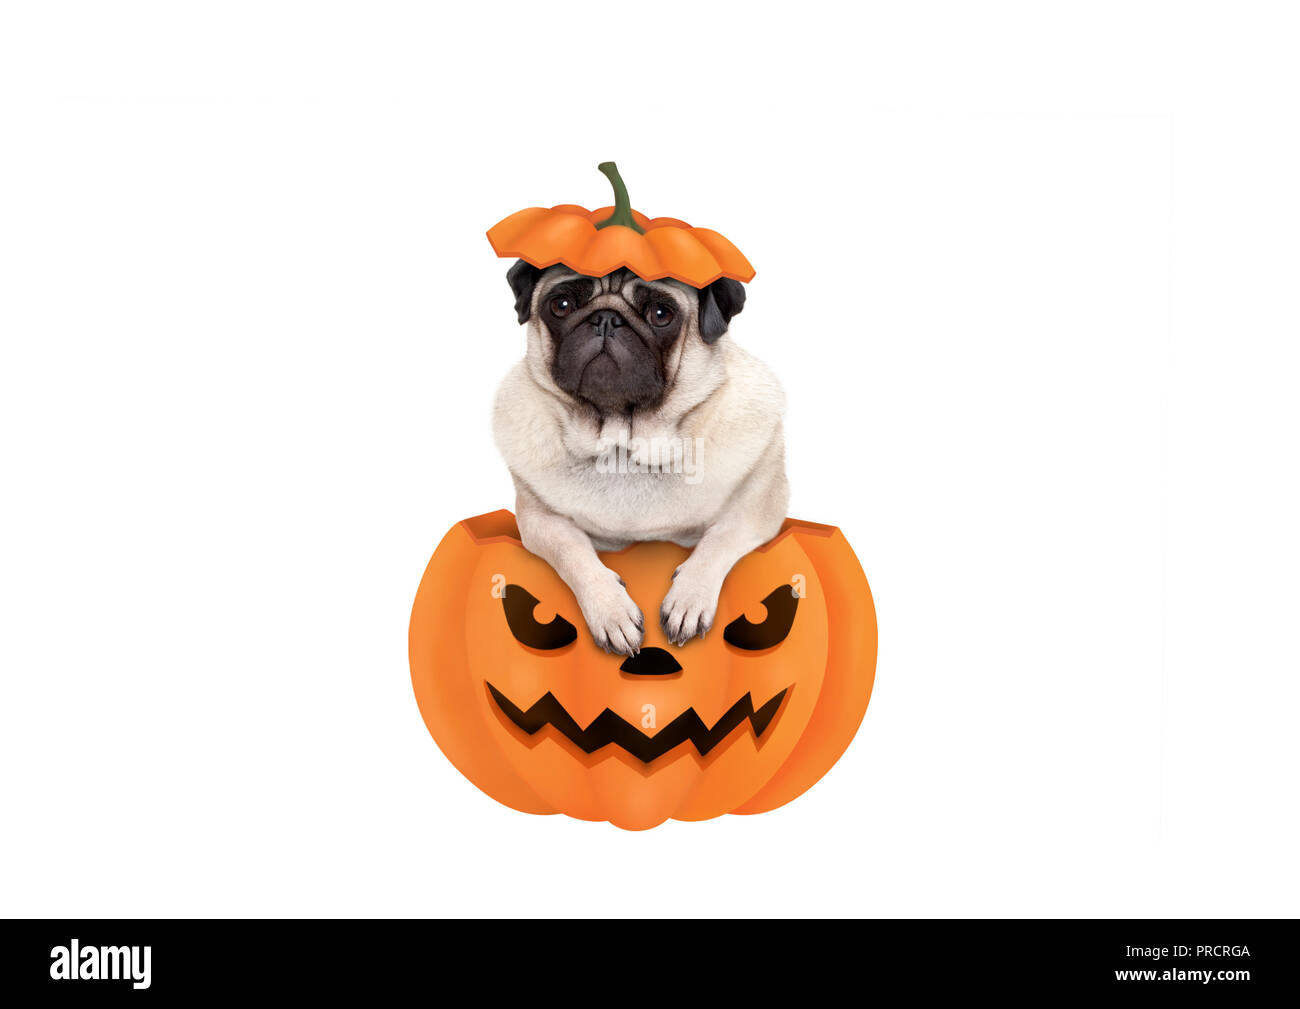 cute pug puppy dog sitting in carved pumpkin with scary face, wearing lid as hat, isolated on white background Stock Photo